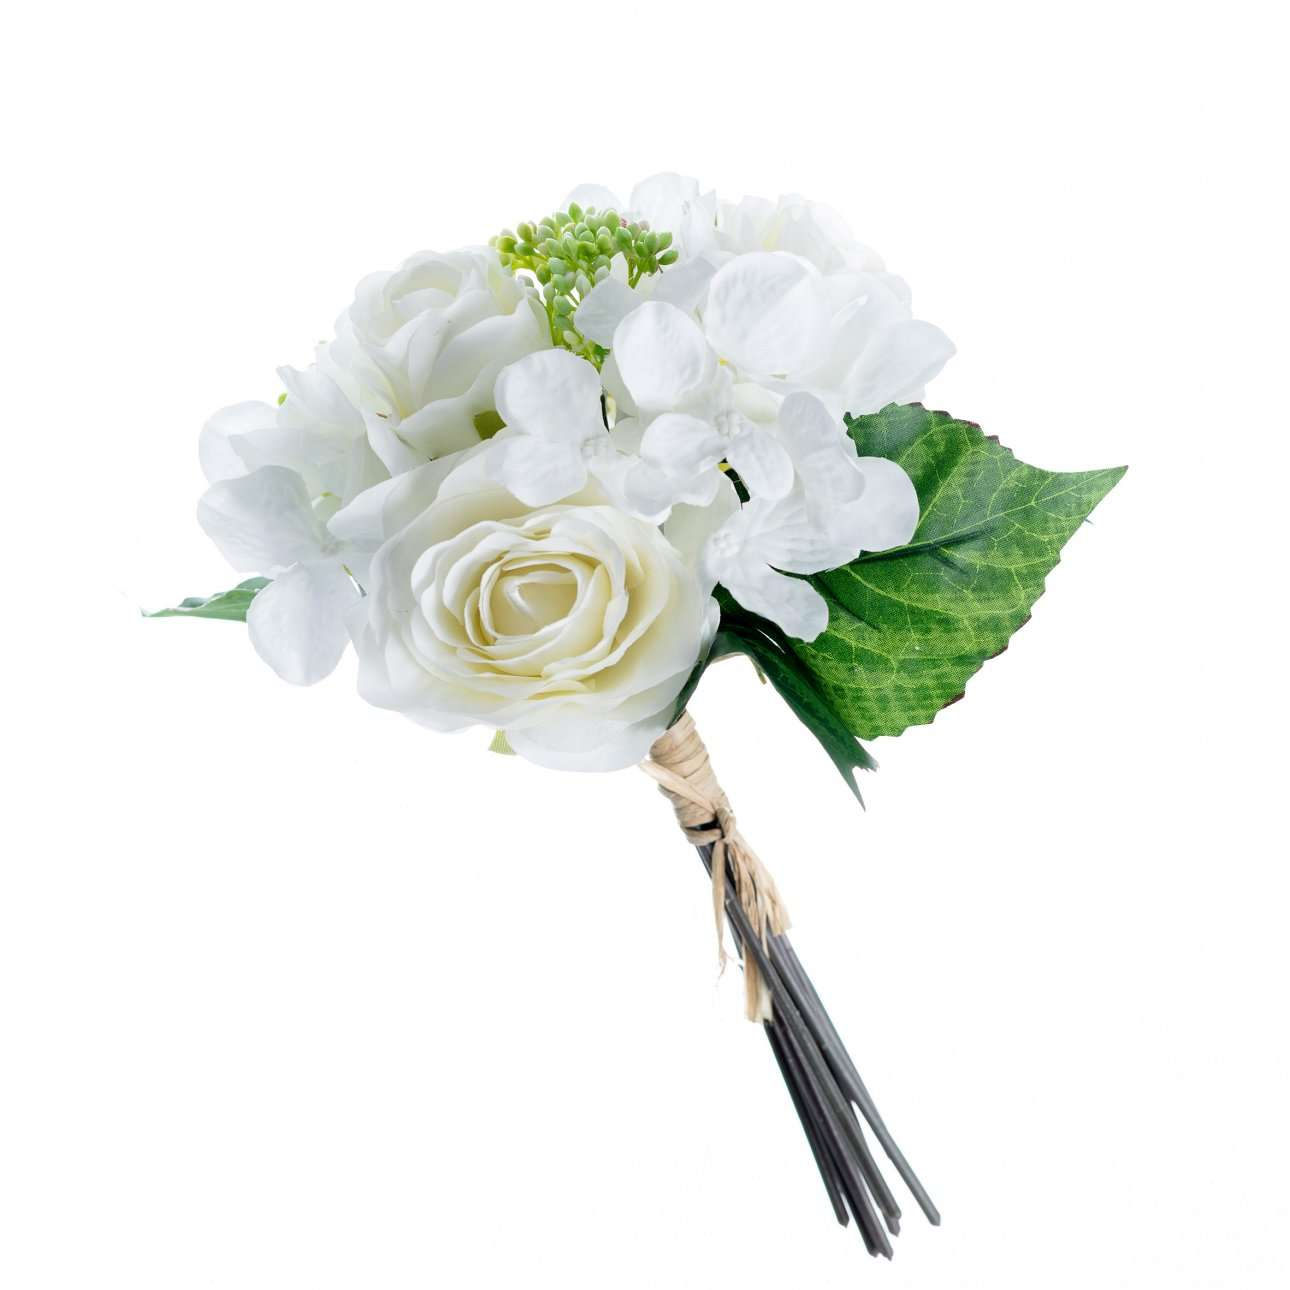 Artificial White Hydrangea and Roses Bouquet H 32 cm